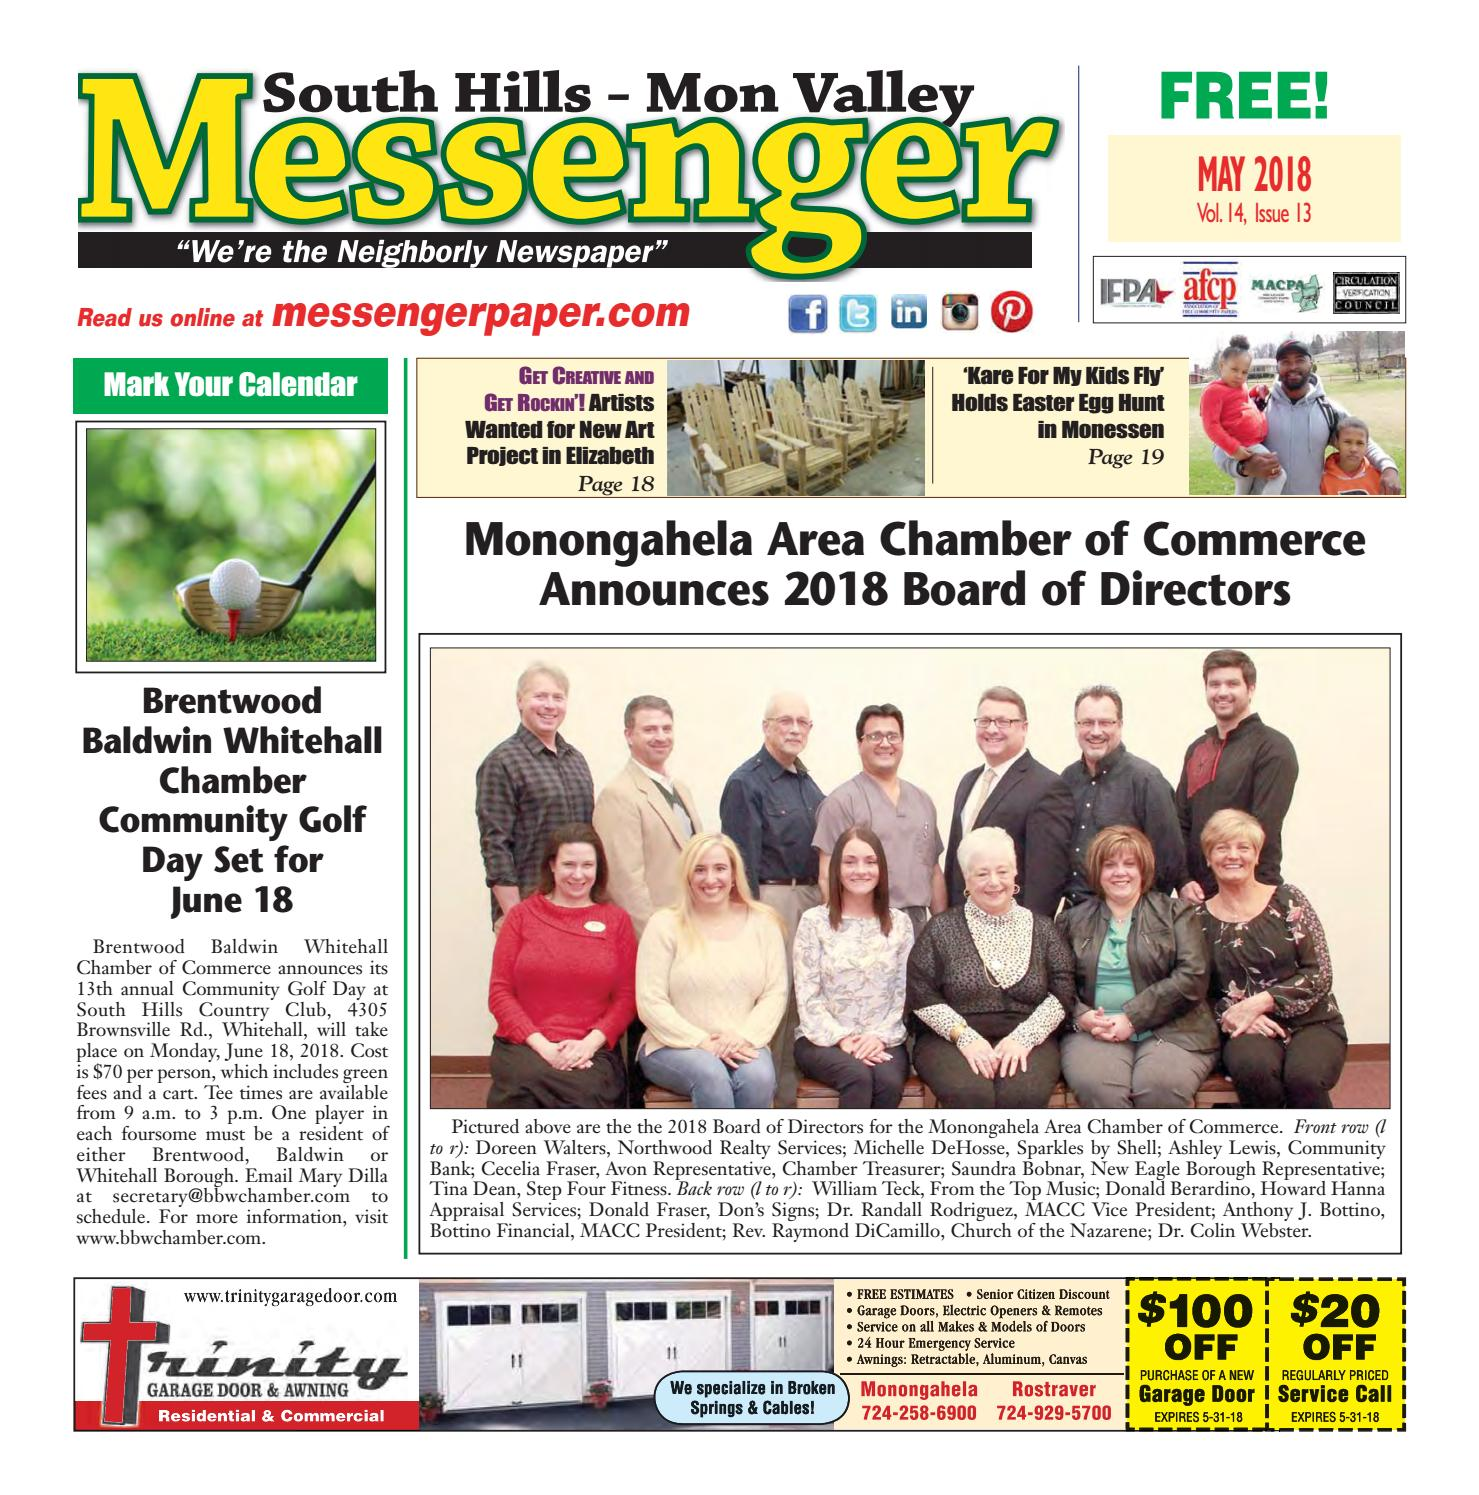 South Hills Mon Valley Messenger May 2018 by South Hills Mon Valley Messenger issuu